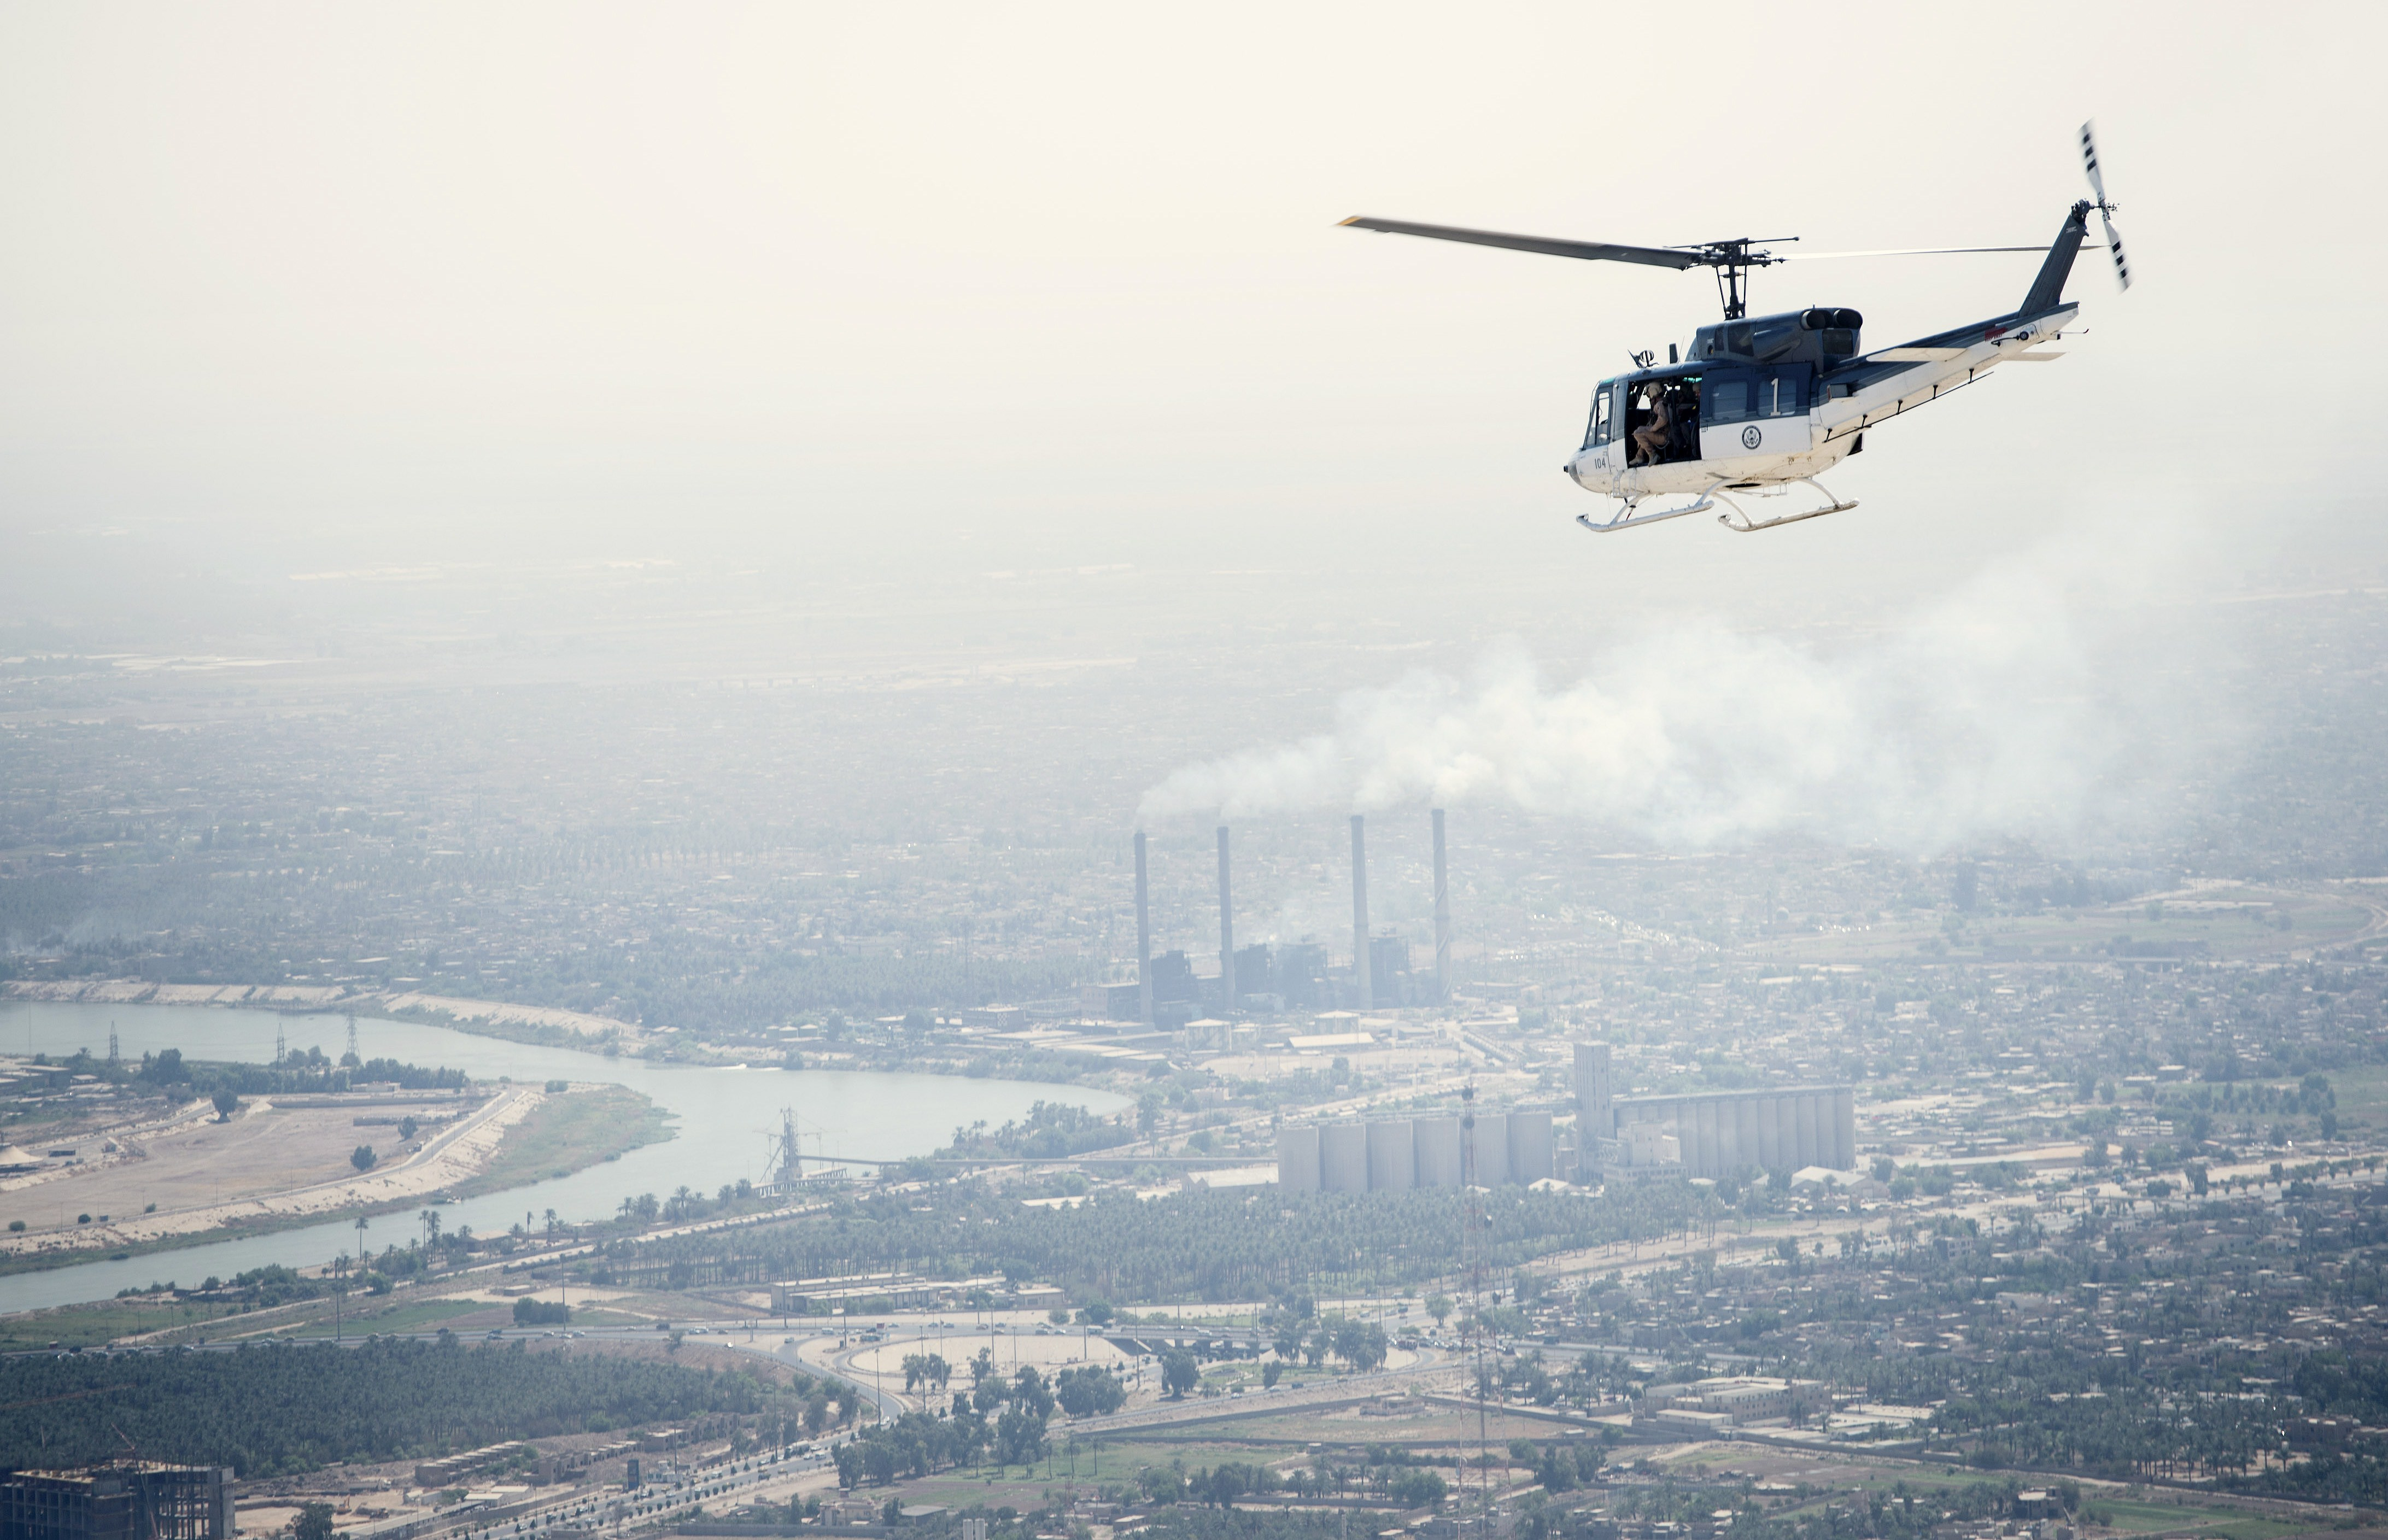 A US State Department helicopter flies over Baghdad on September 10, 2014. US Secretary of State John Kerry flew to the Iraqi capital to hold talks with Iraq's new leaders on their role in a long-awaited strategy against Islamic State jihadists to be unveiled by President Barack Obama.